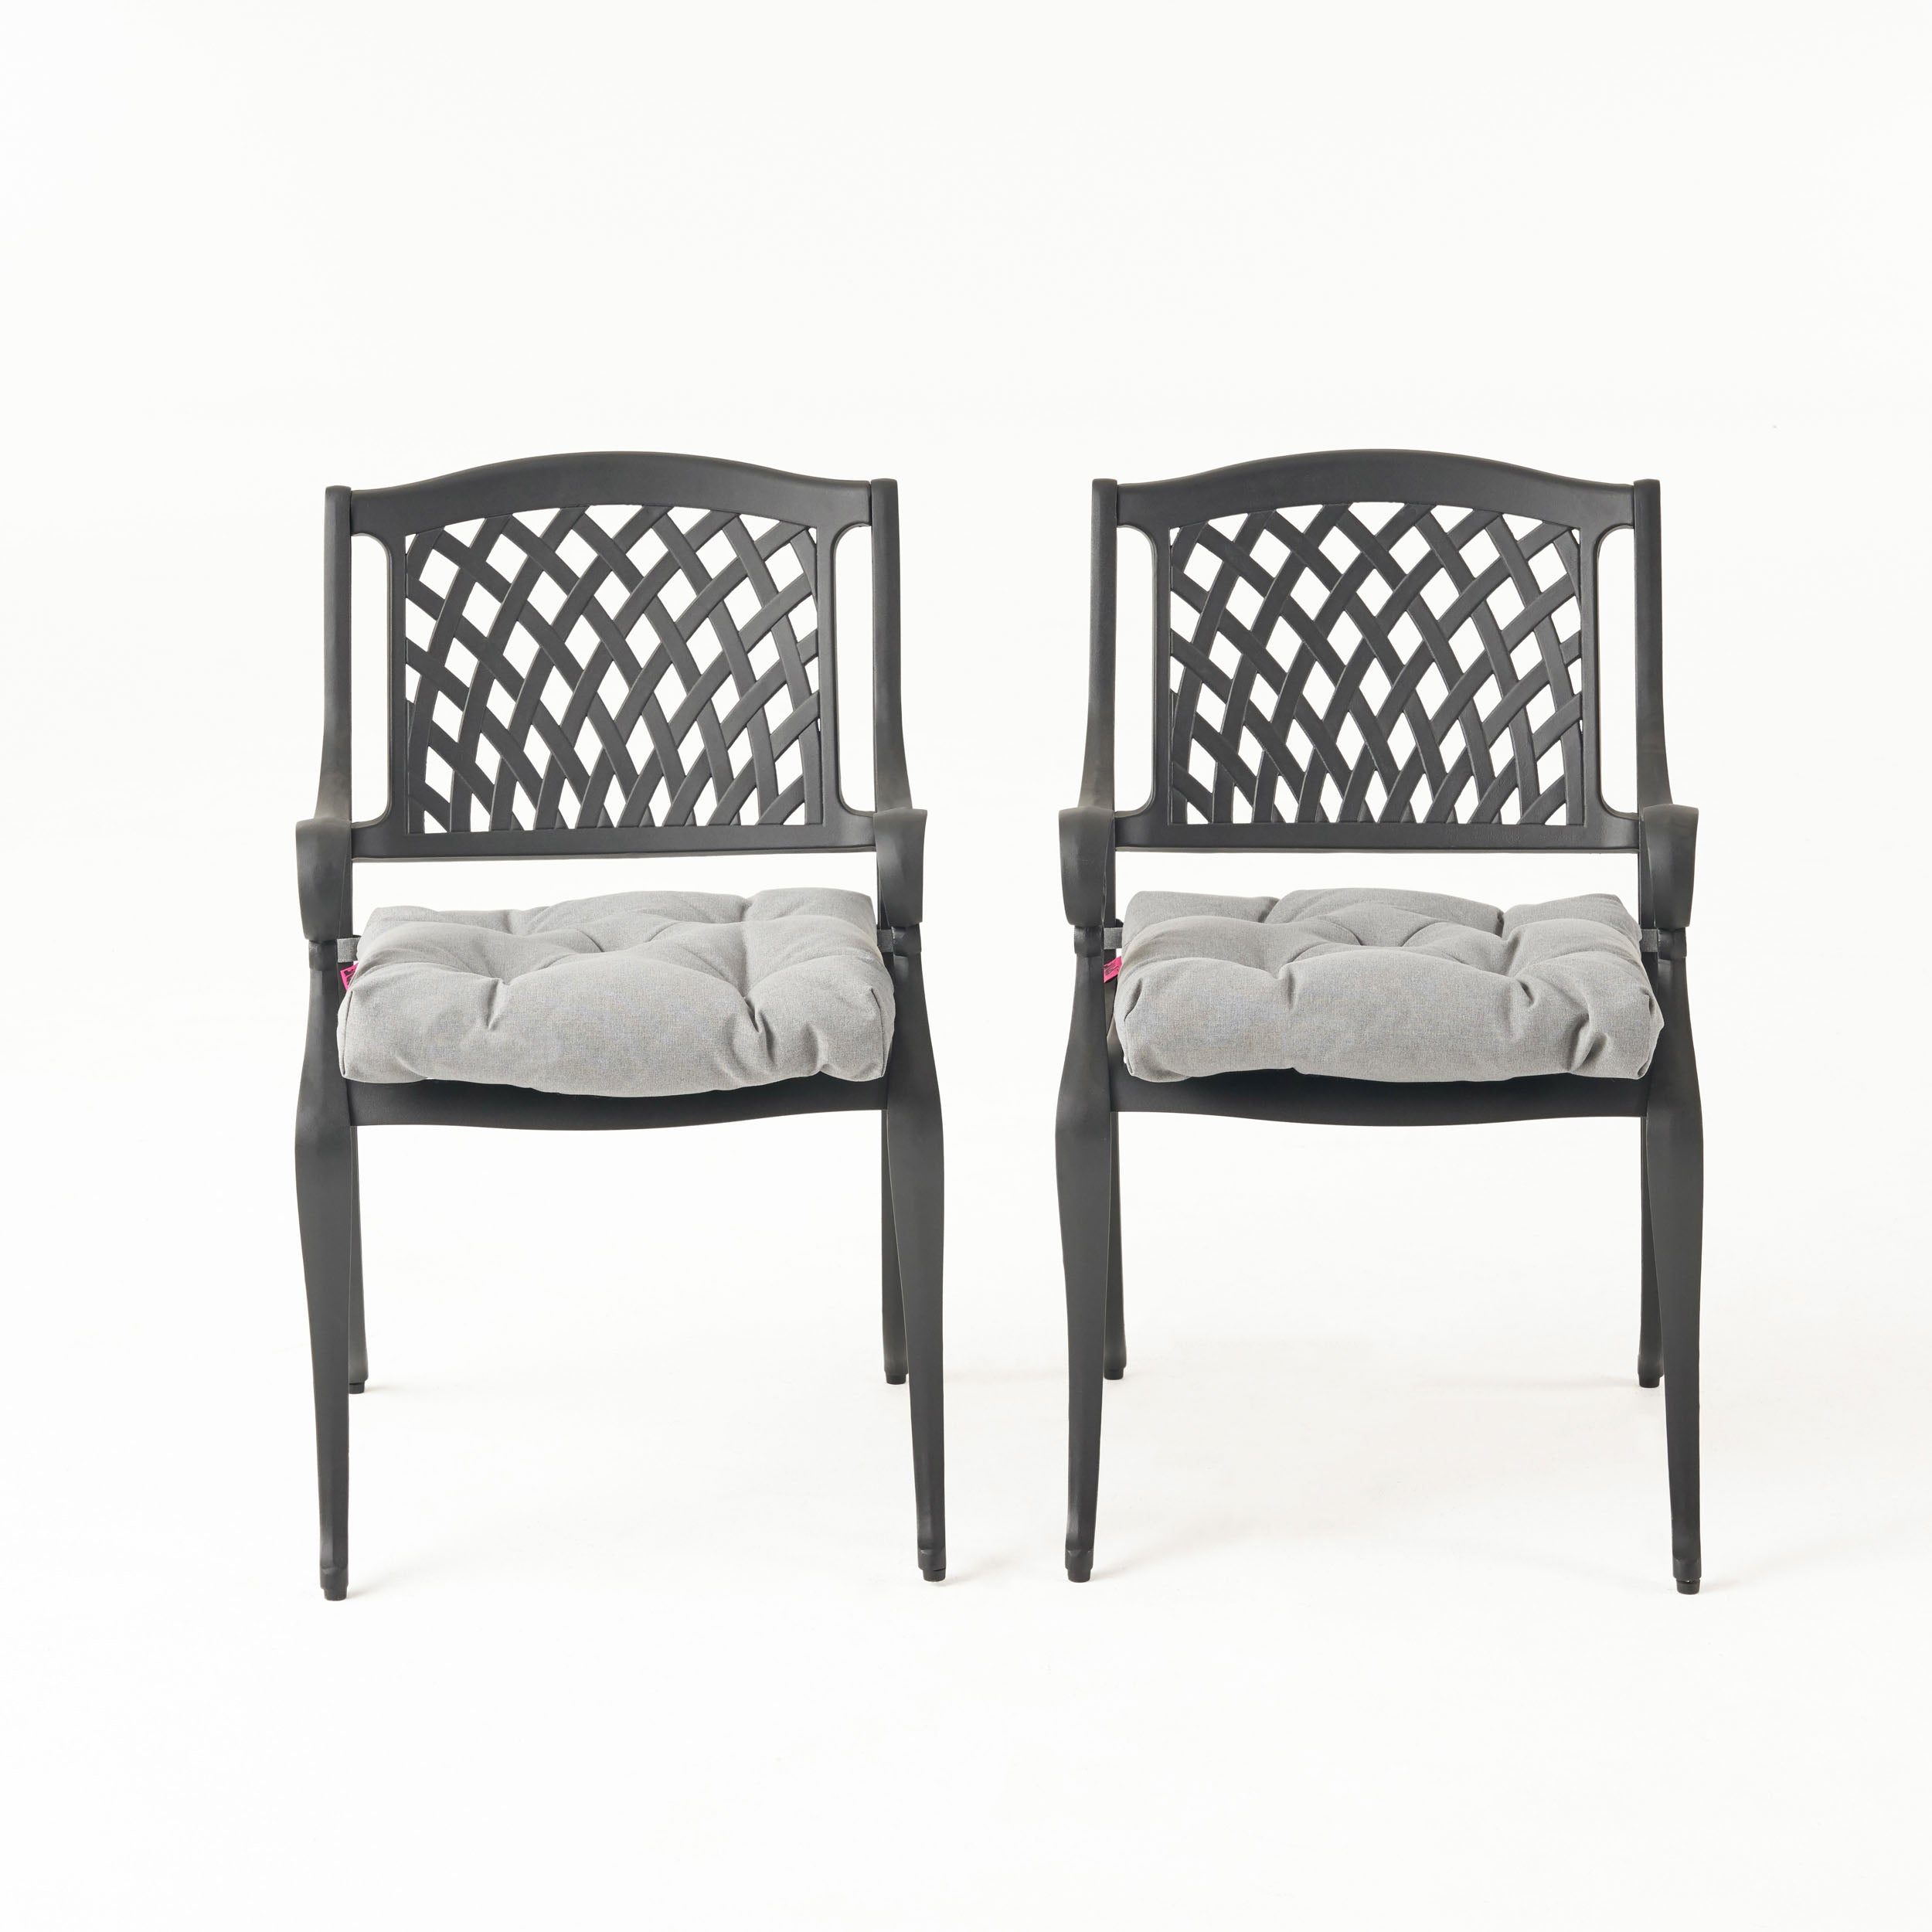 Allee Outdoor Dining Chair with Cushion Set of 2 Charcoal